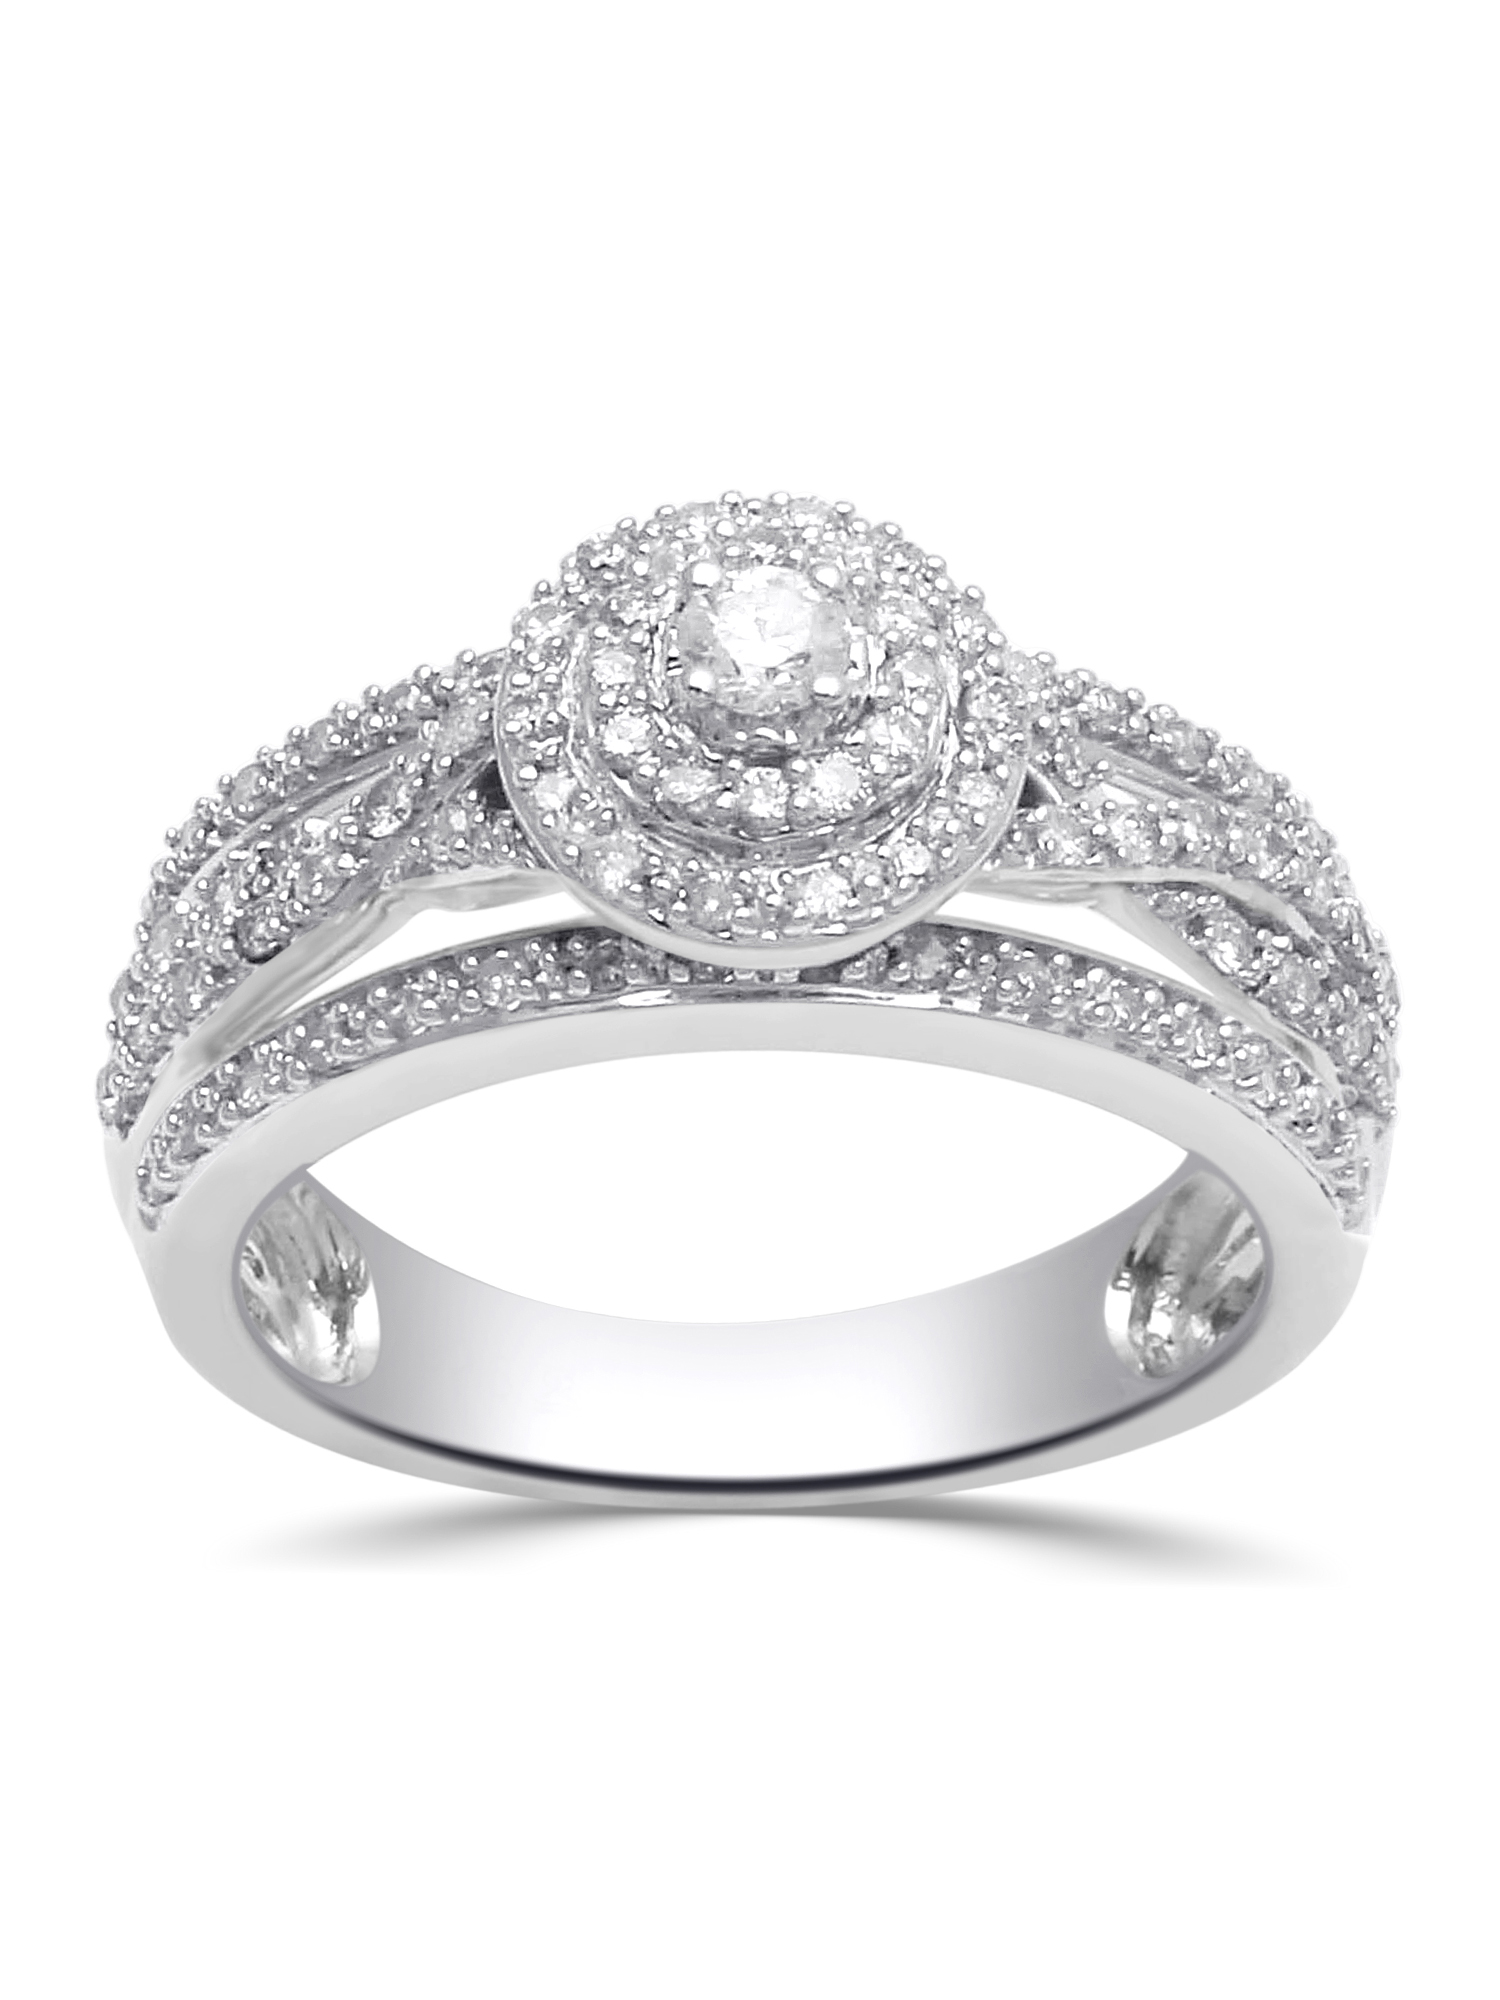 1/2 Carat T.W. Diamond Sterling Silver Anniversary Ring